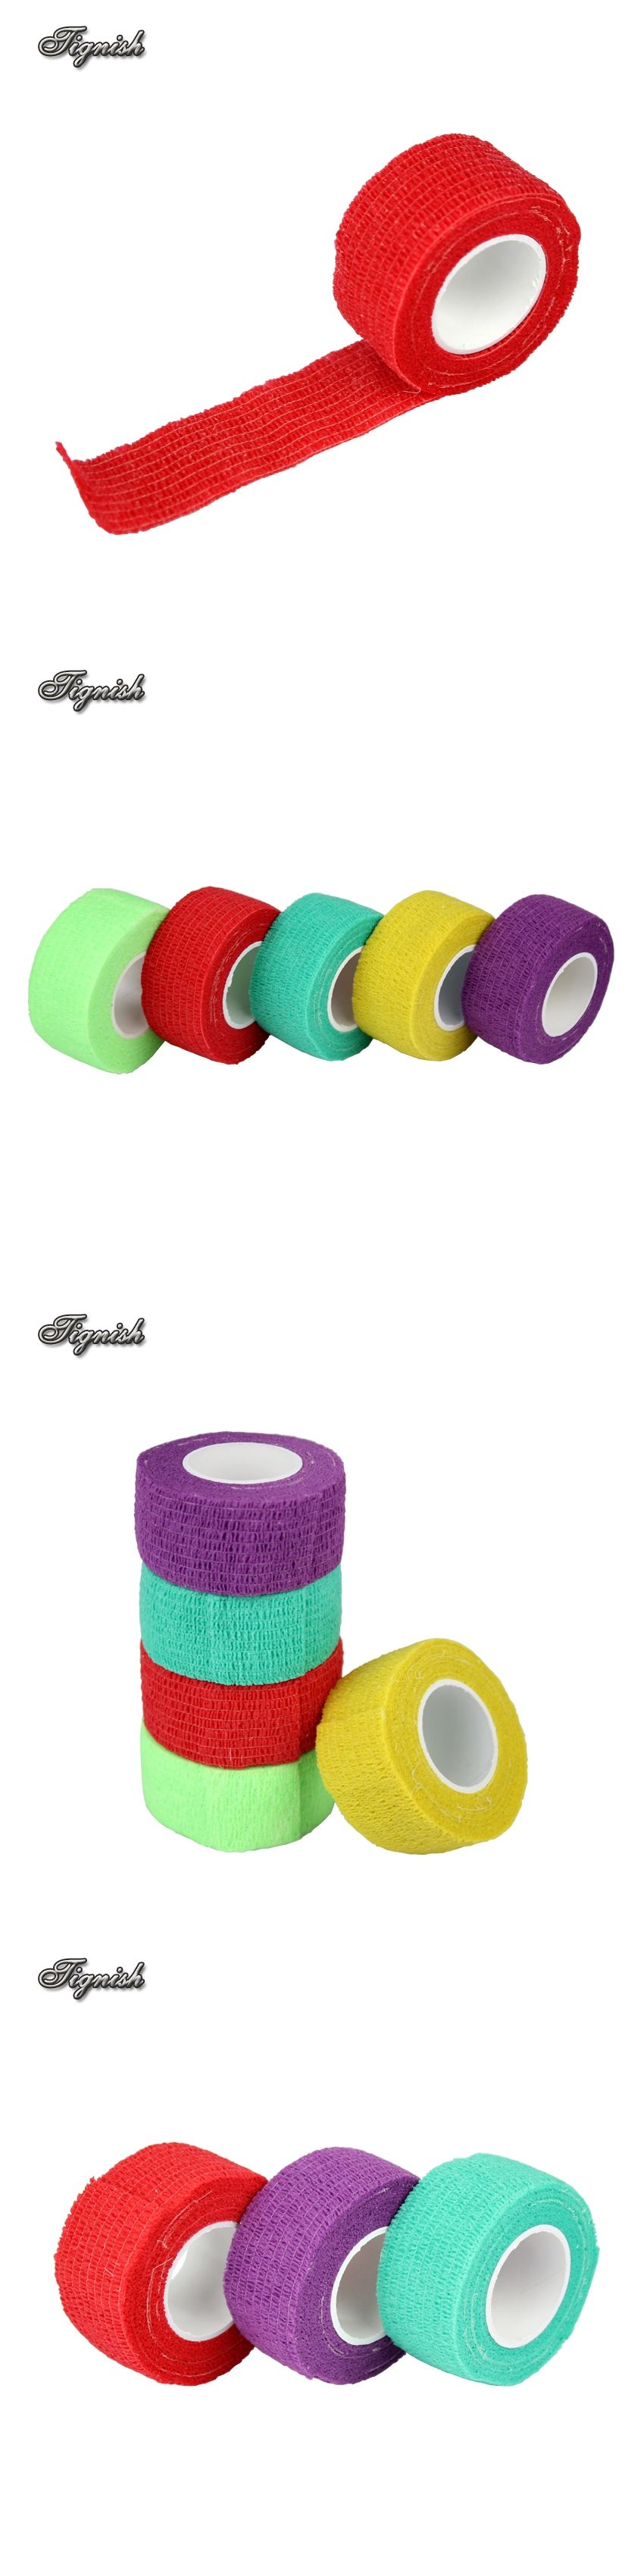 Tignish 1Pcs Self Adhesive Non-Woven Fabric Elastic Nail Tapes ...